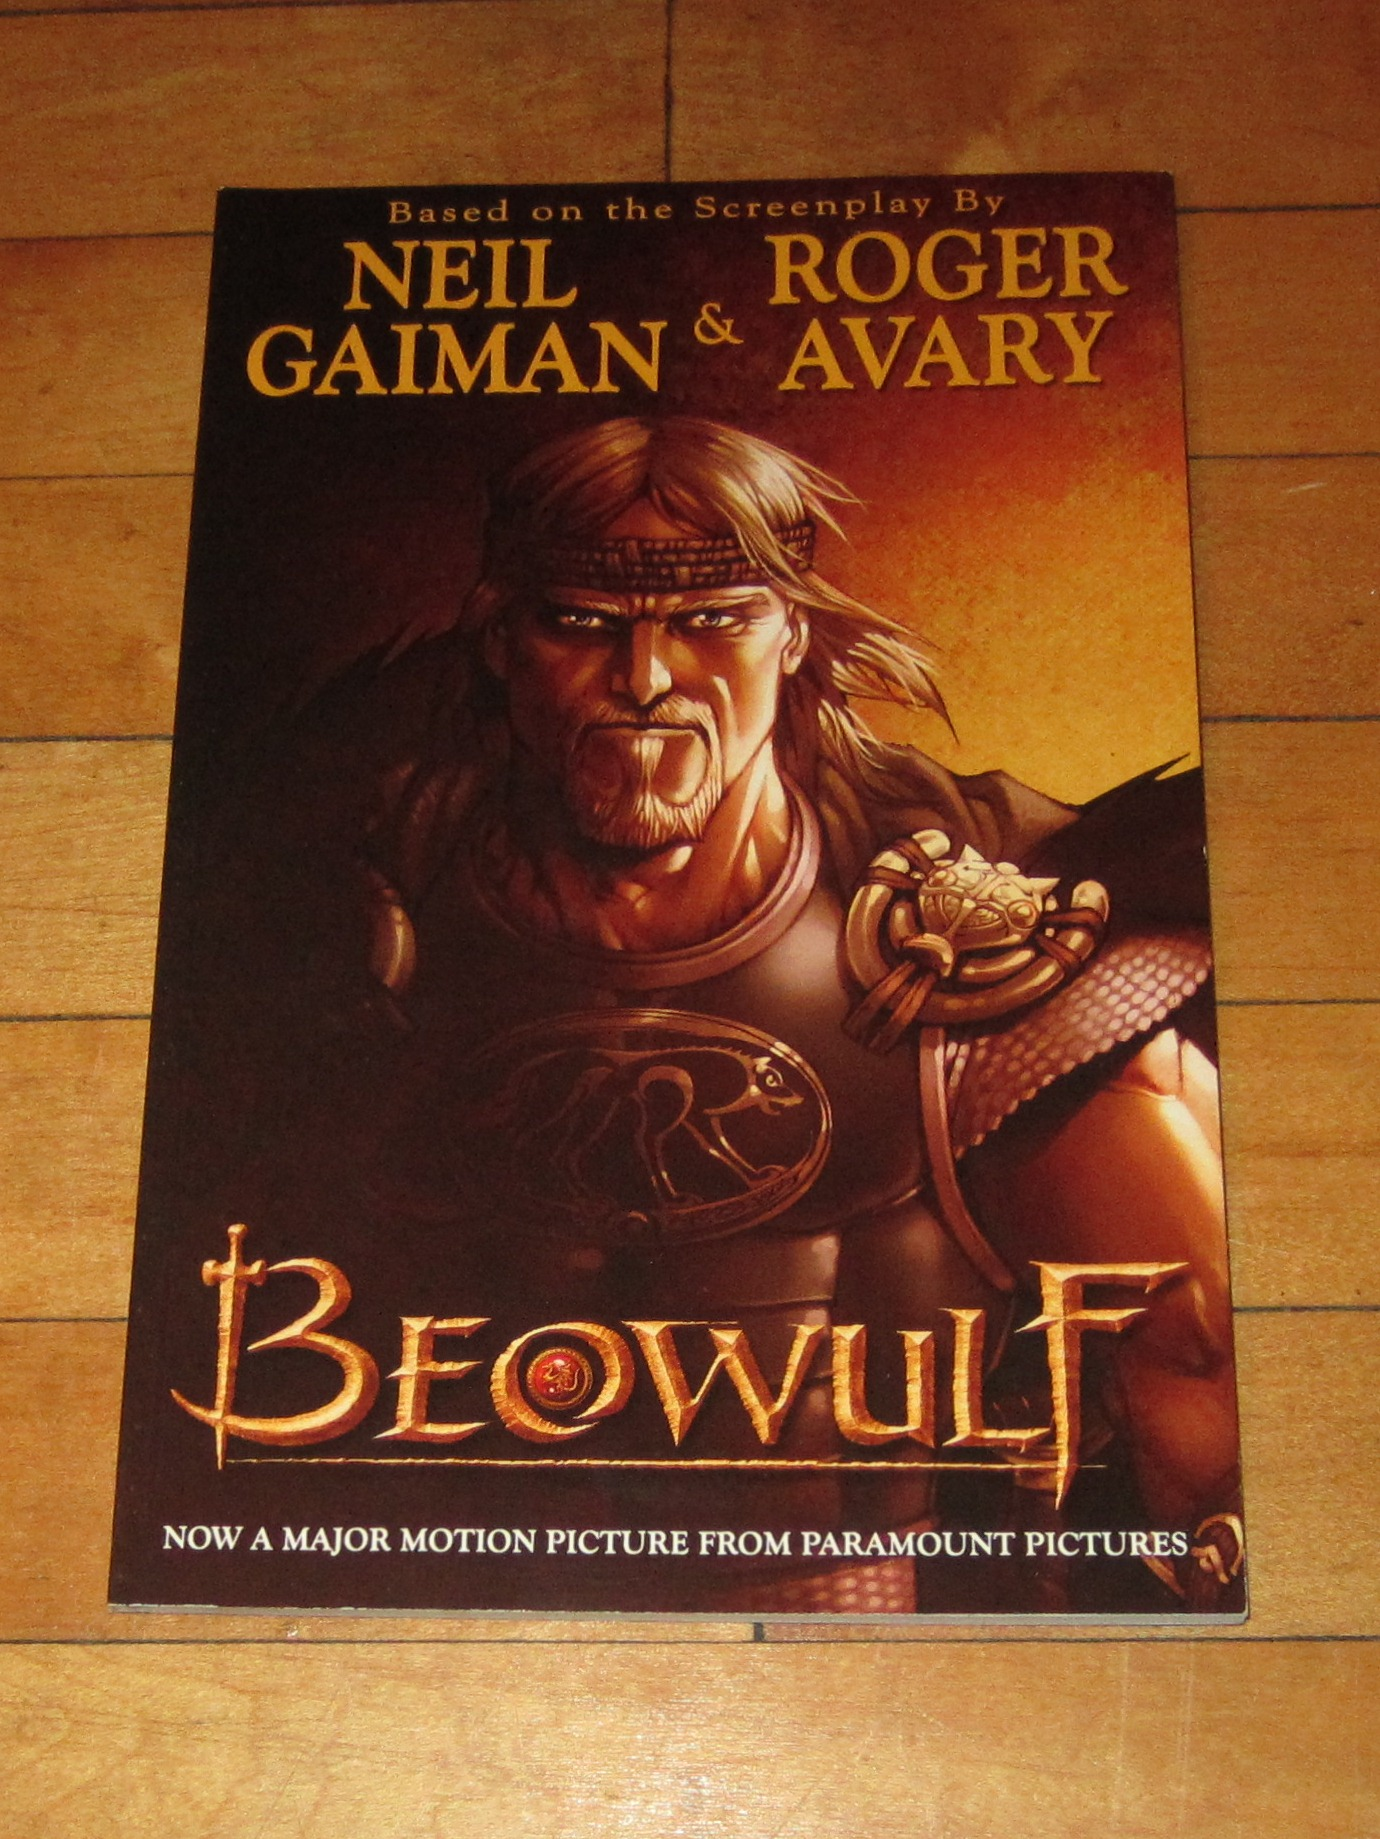 grendel retelling beowulf Grendel is a 1971 novel by american author john gardnerit is a retelling of part of the old english poem beowulf from the perspective of the antagonist, grendelin the novel, grendel is portrayed as an antihero.